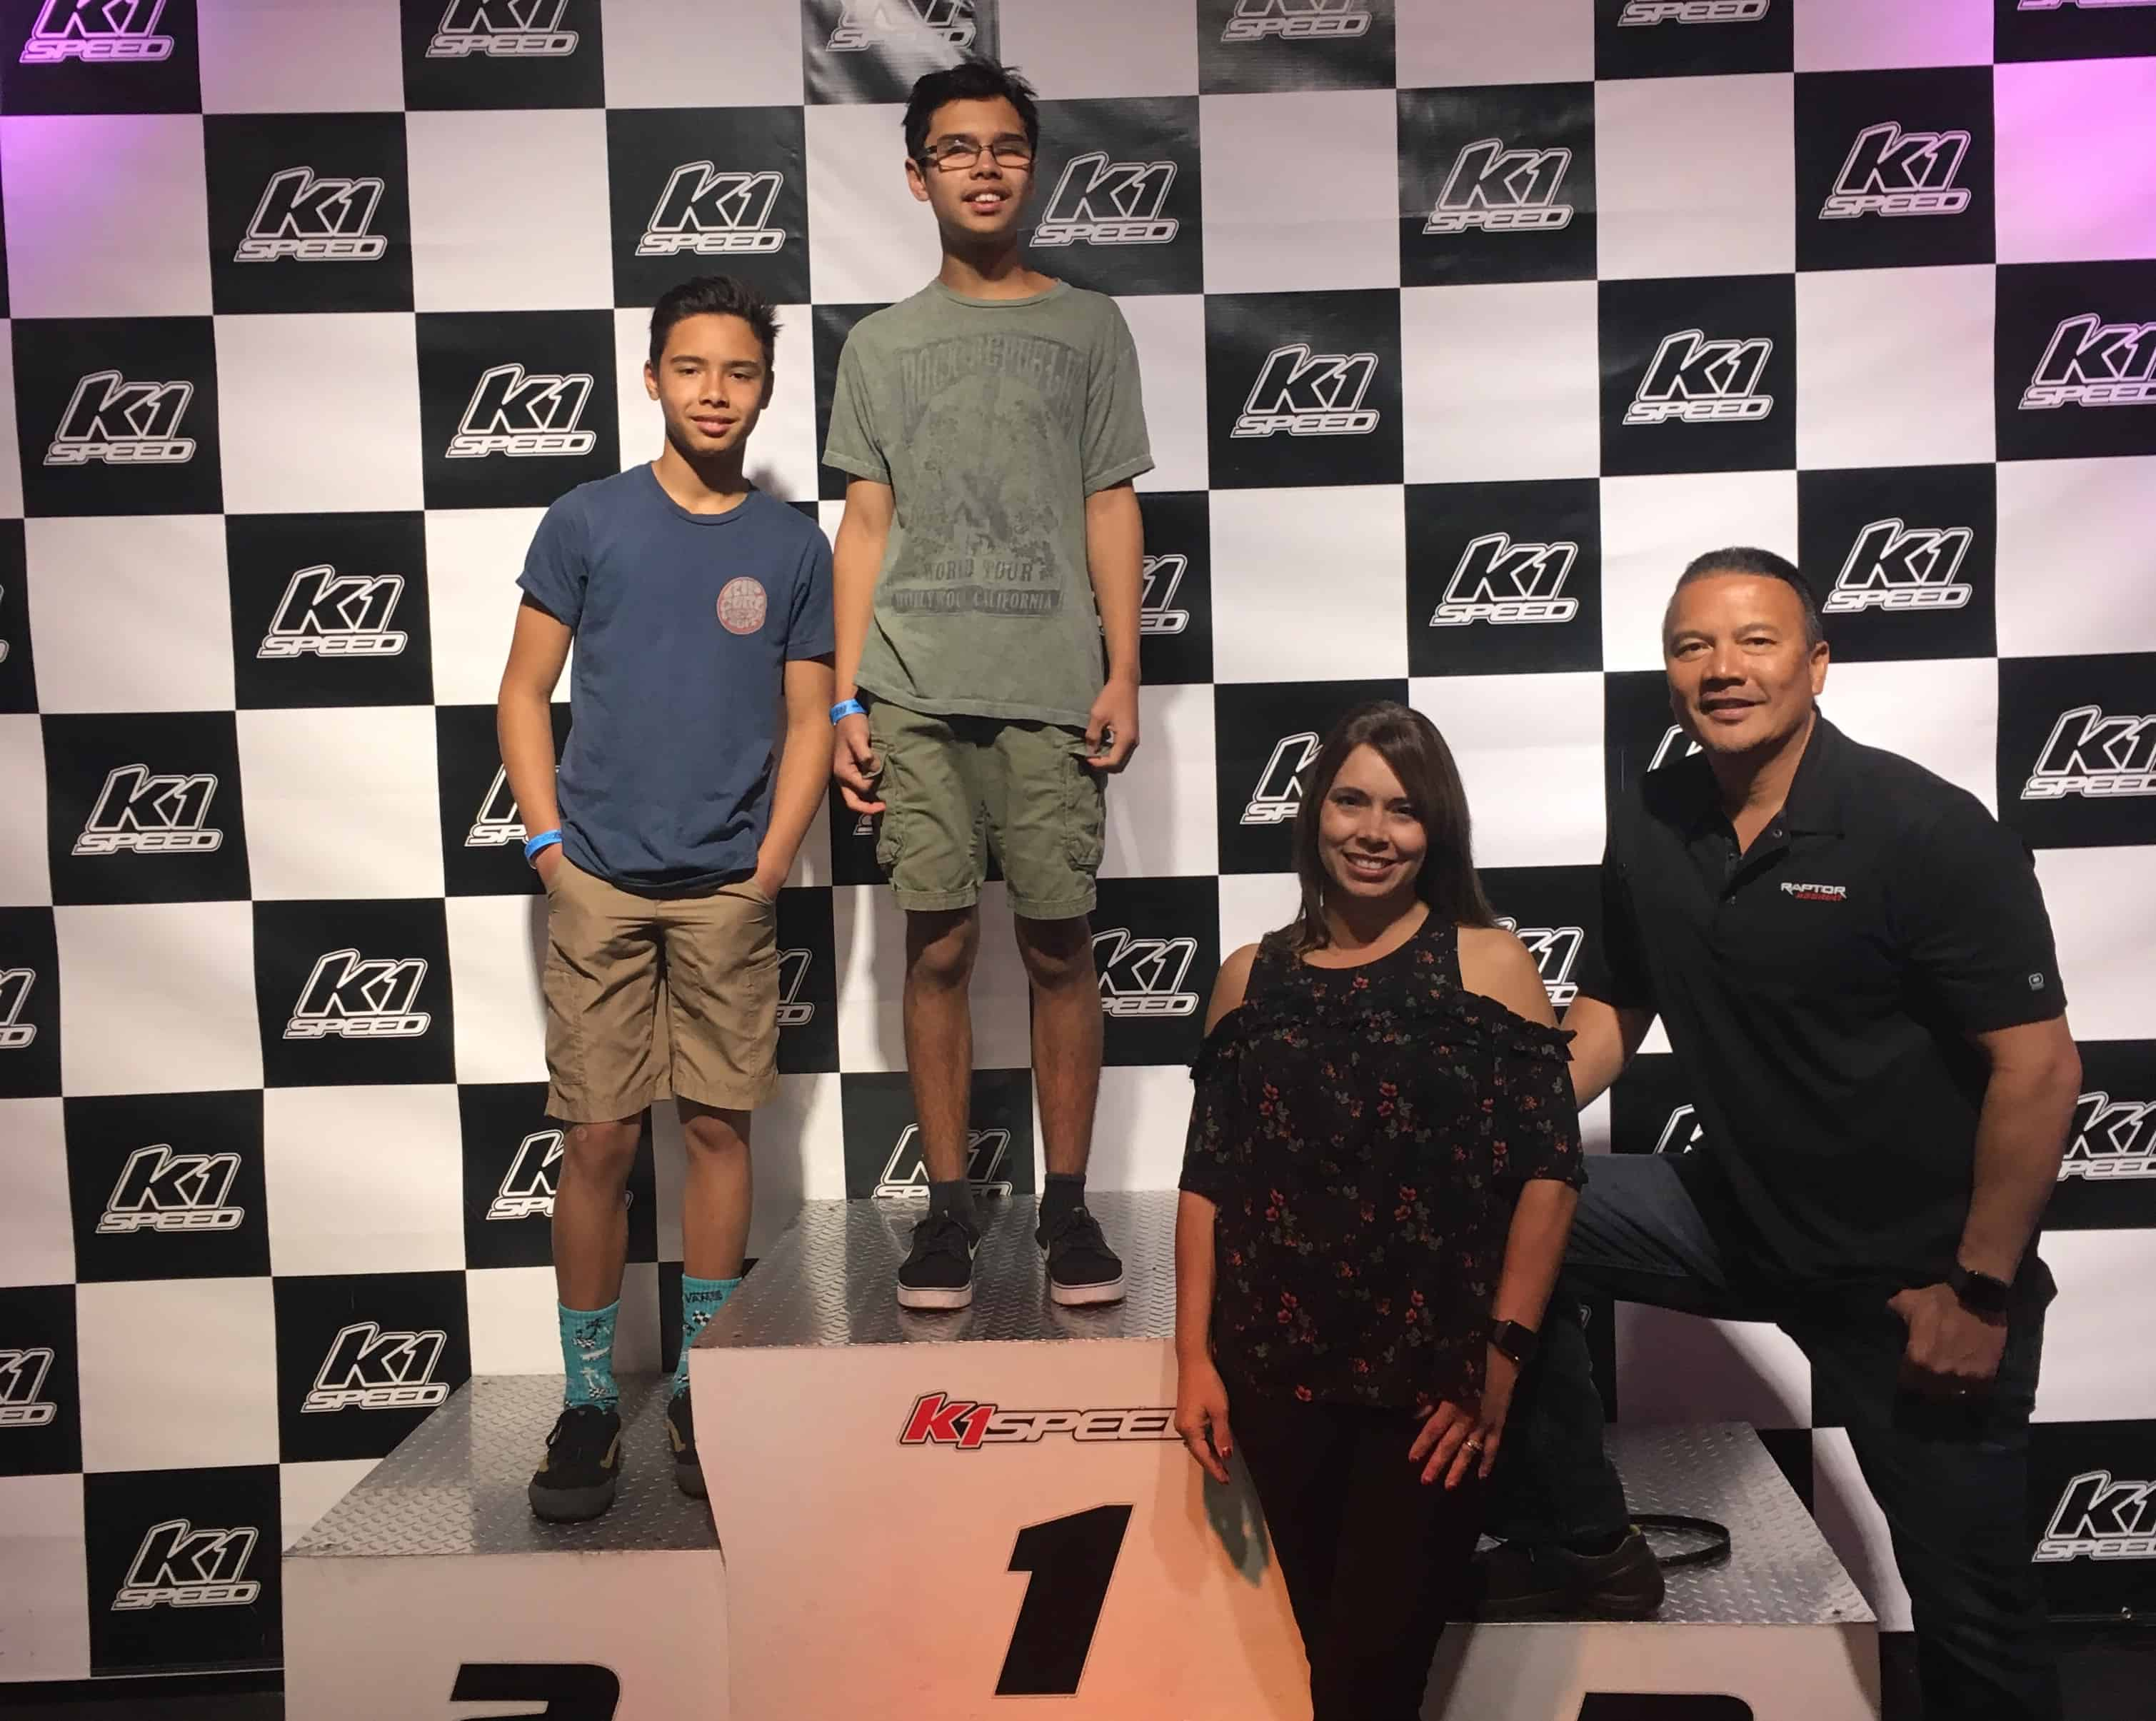 Christian with his brother, father, and mother on the podium at K1 Speed Irvine